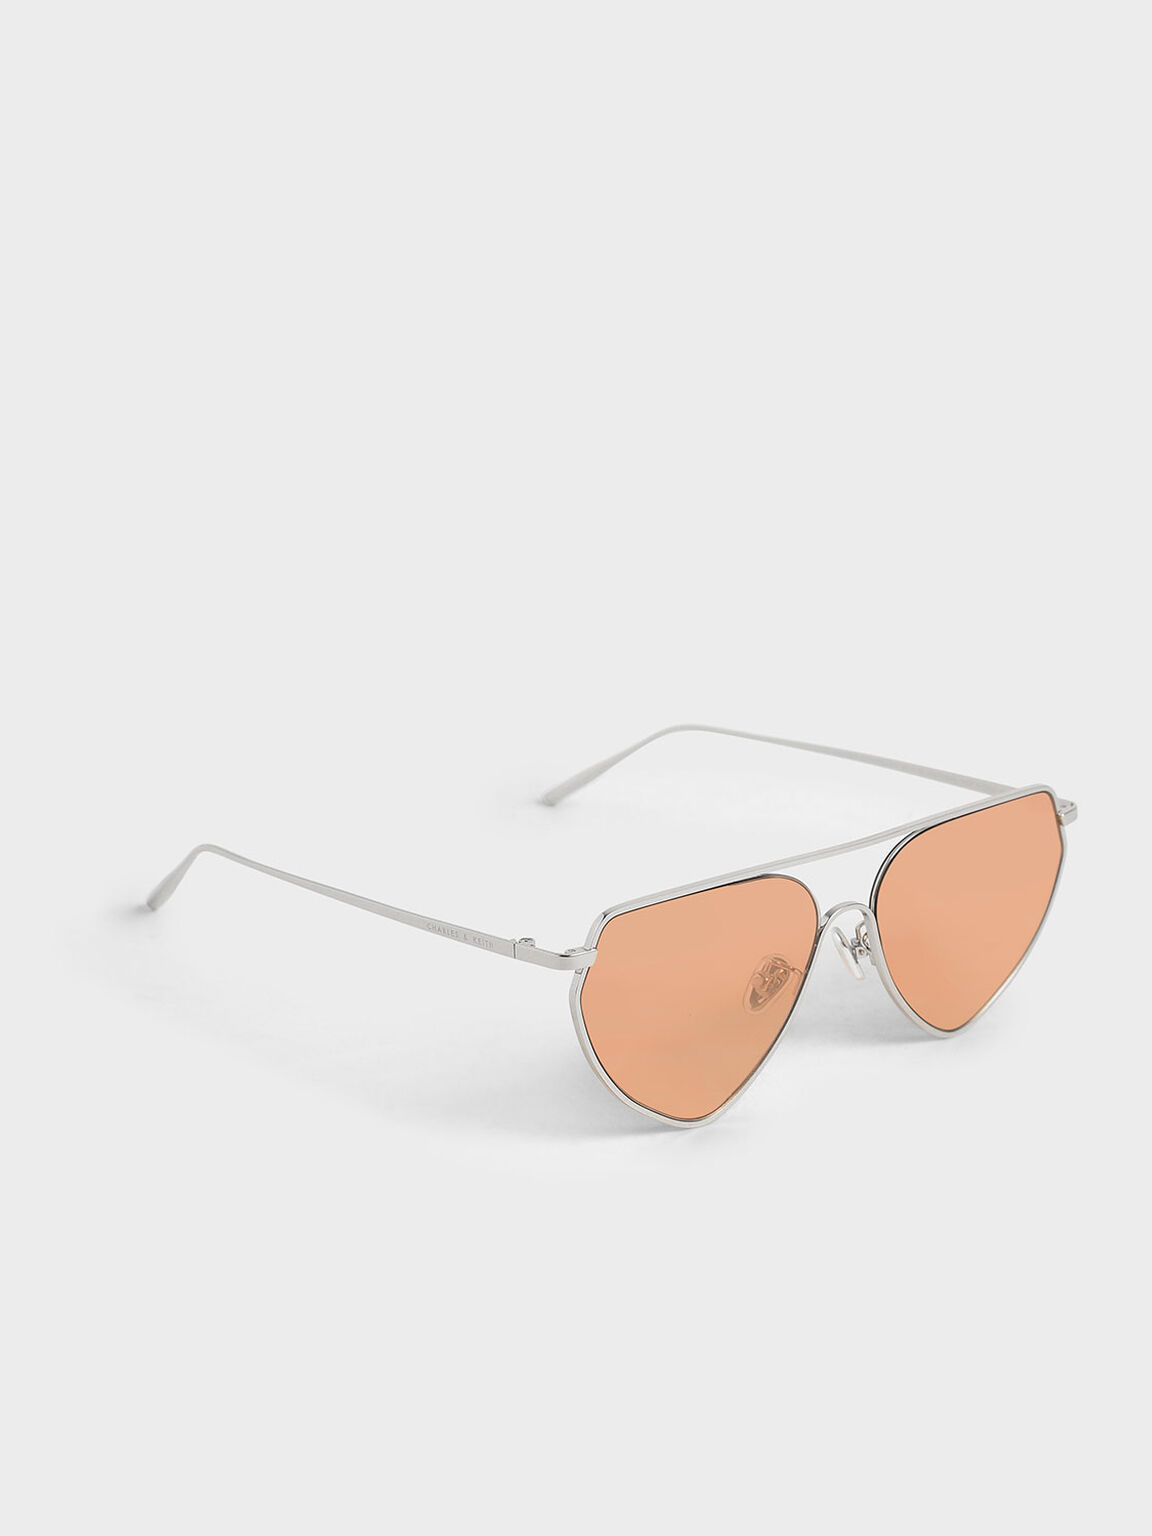 Thin Metal Frame Geometric Sunglasses, Orange, hi-res